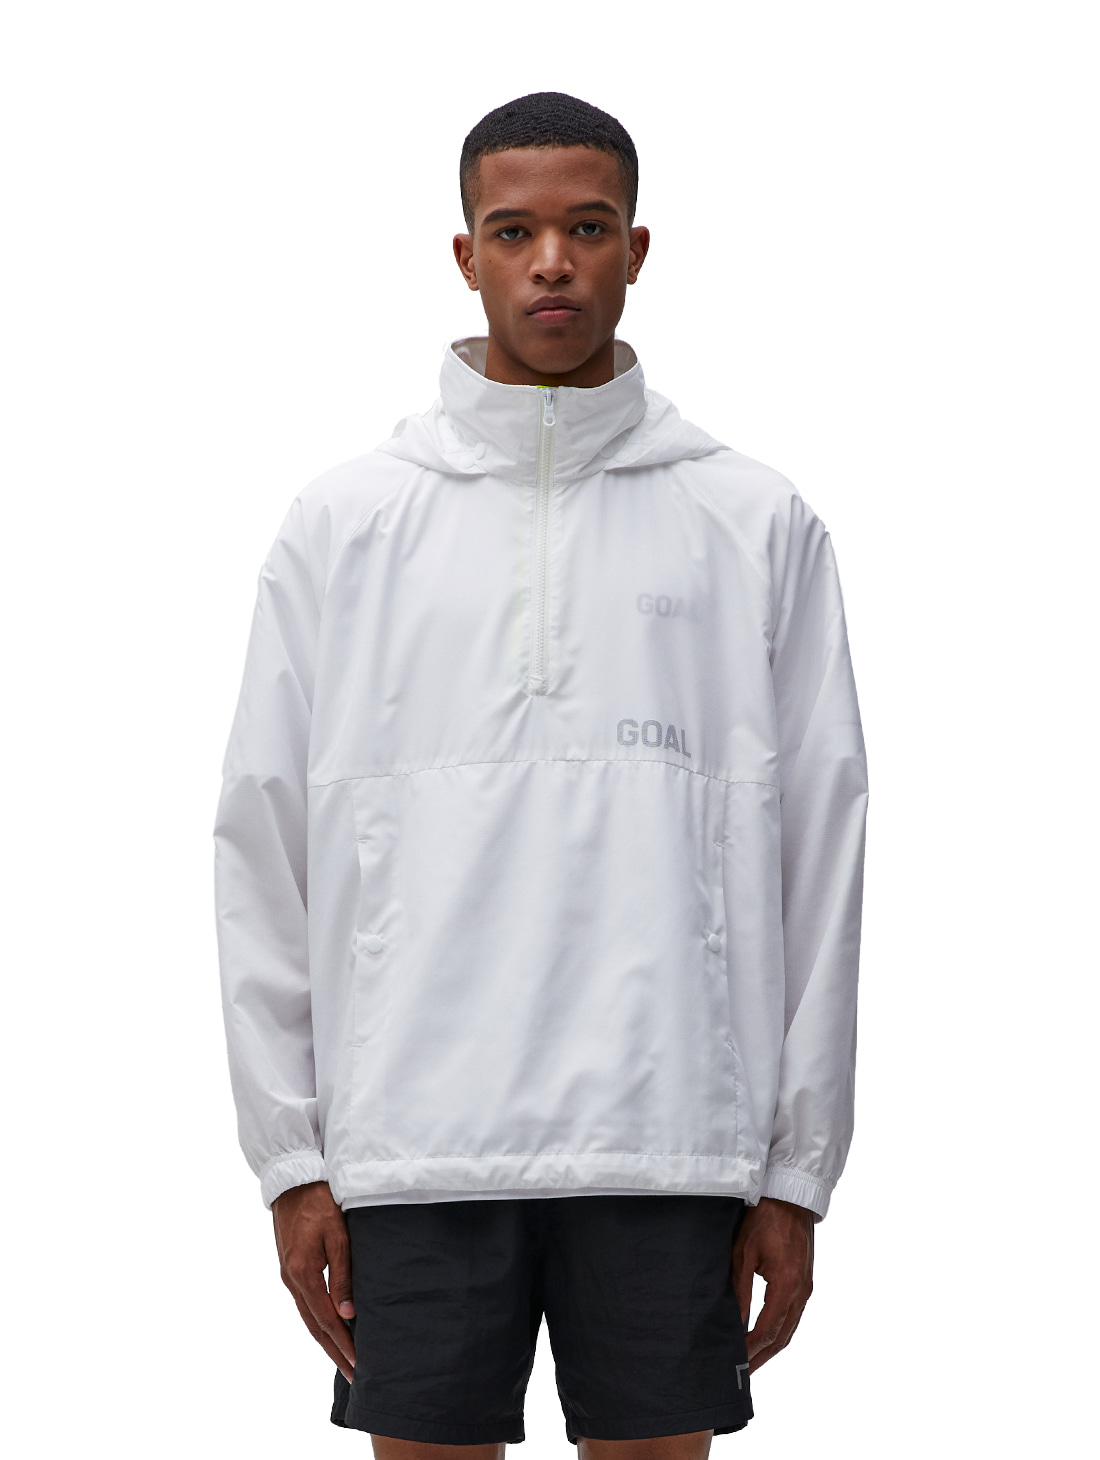 GOALSTUDIO LTG ANORAK - WHITE